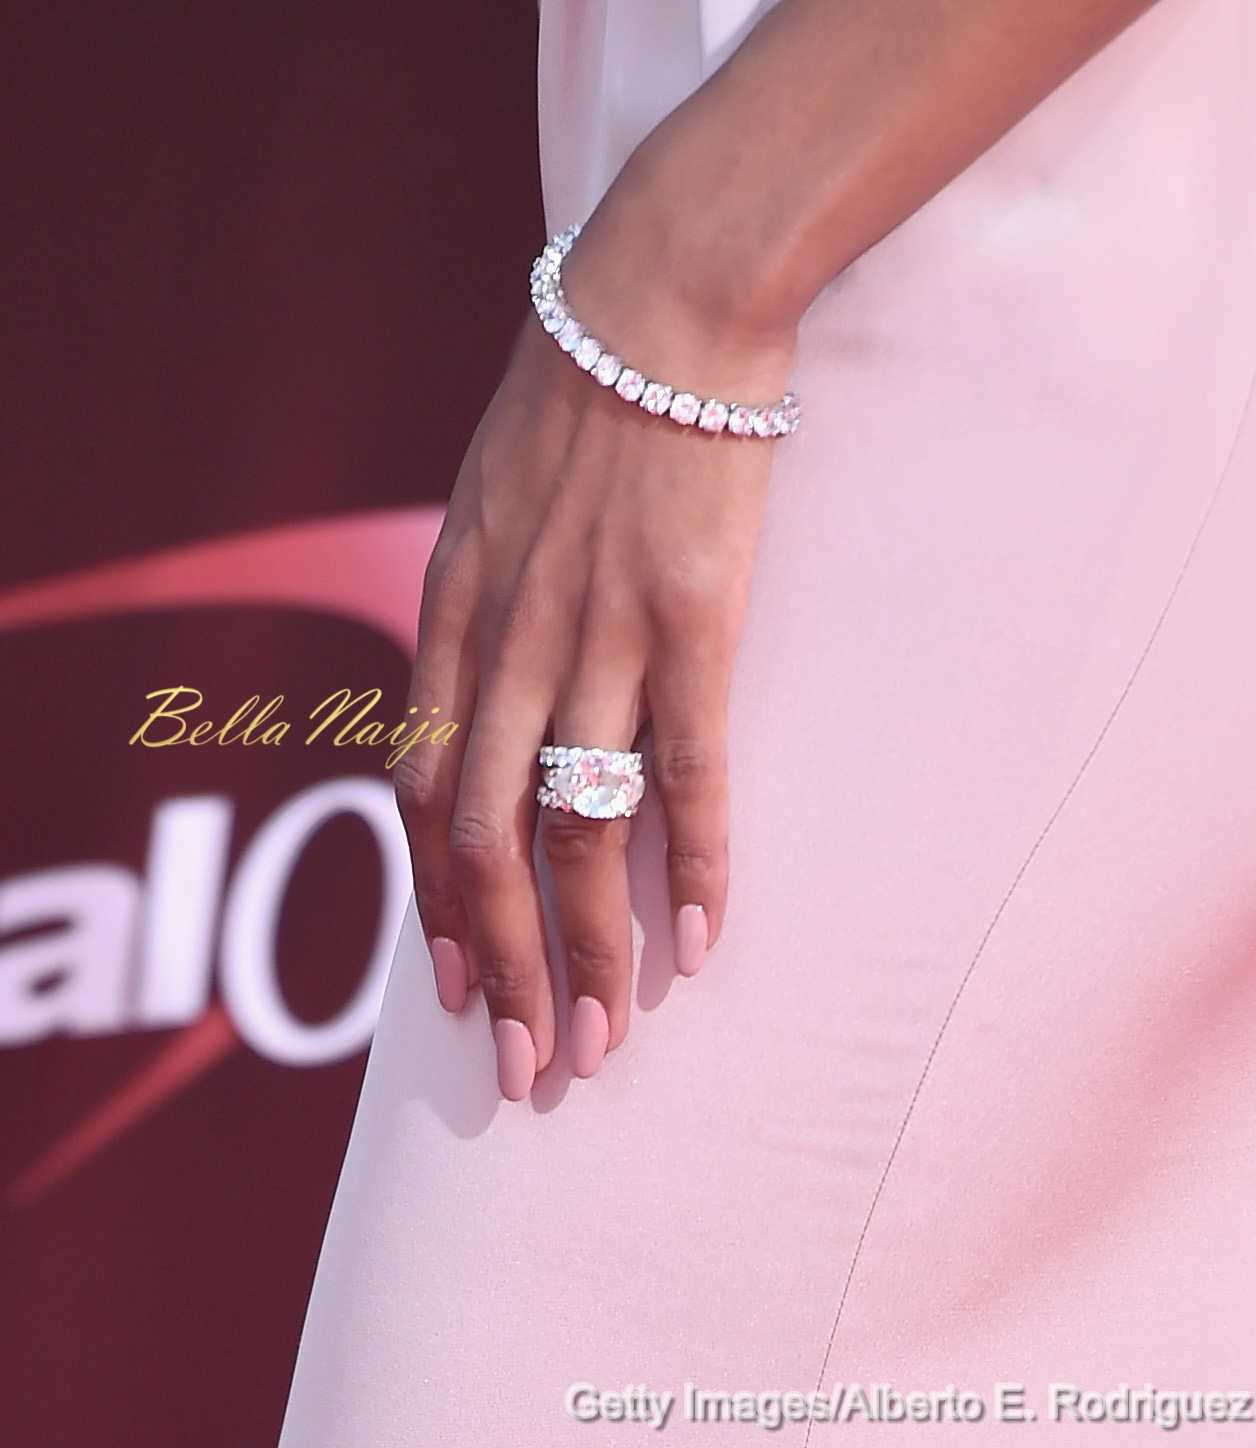 Ayesha alexander engagement ring for Steph curry wedding ring